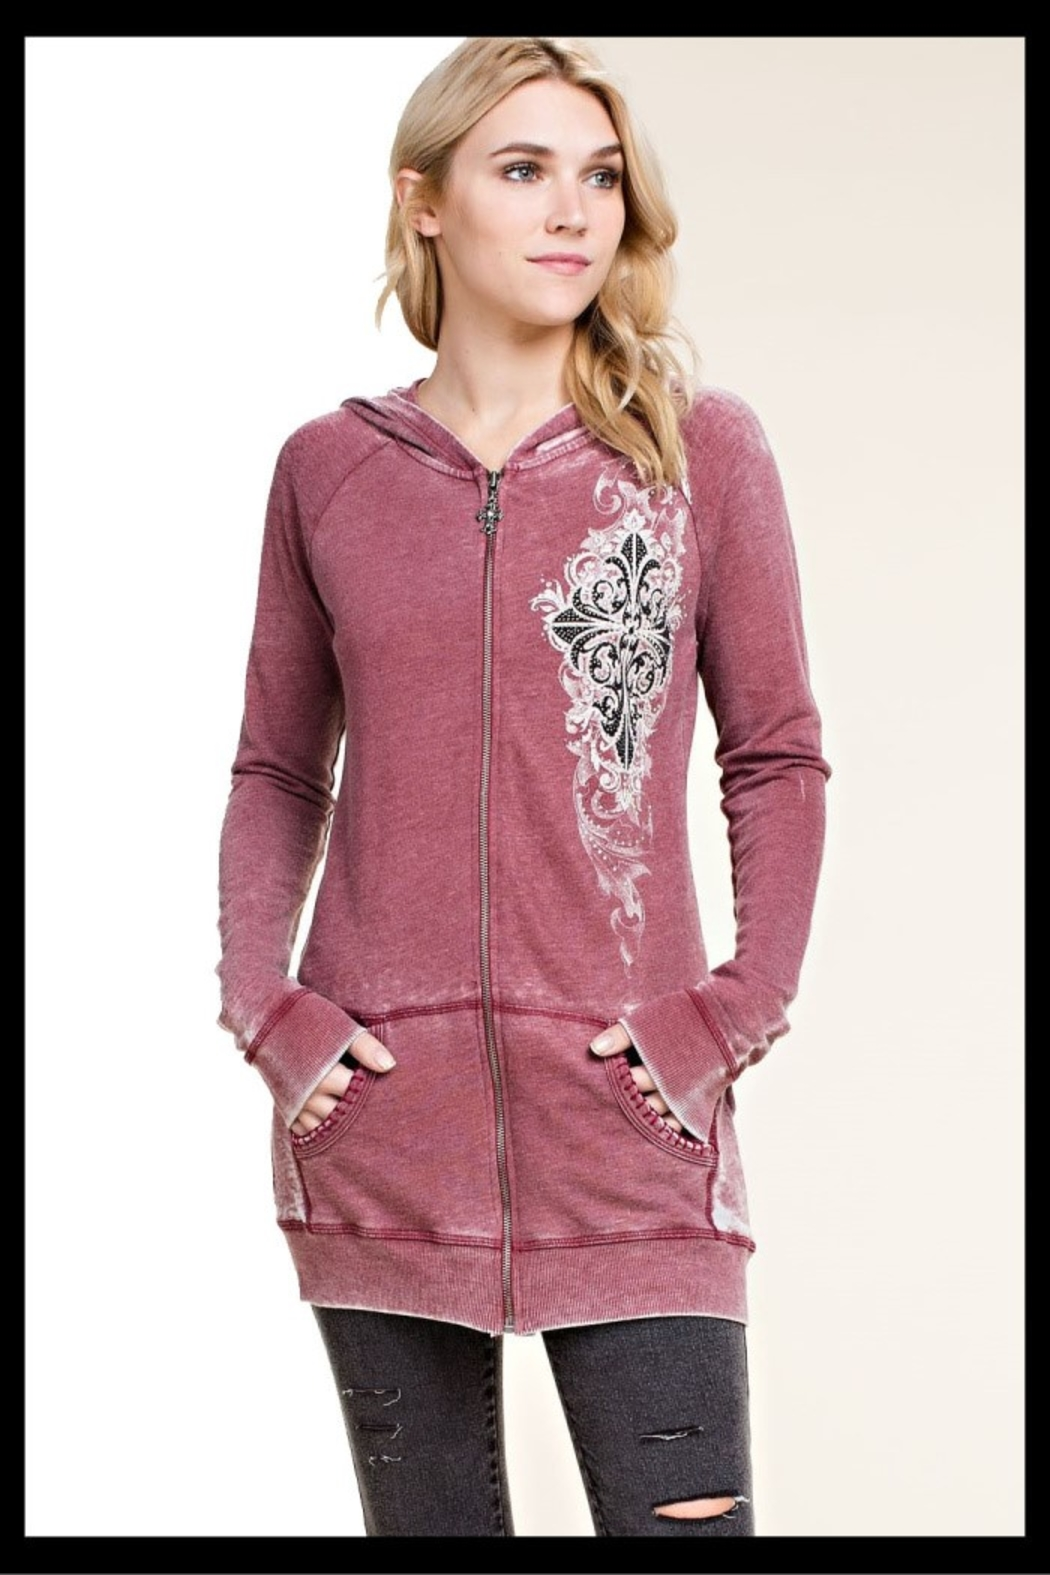 Vocal soft knit hoodie with tie dyed with print and stone detail - Main Image